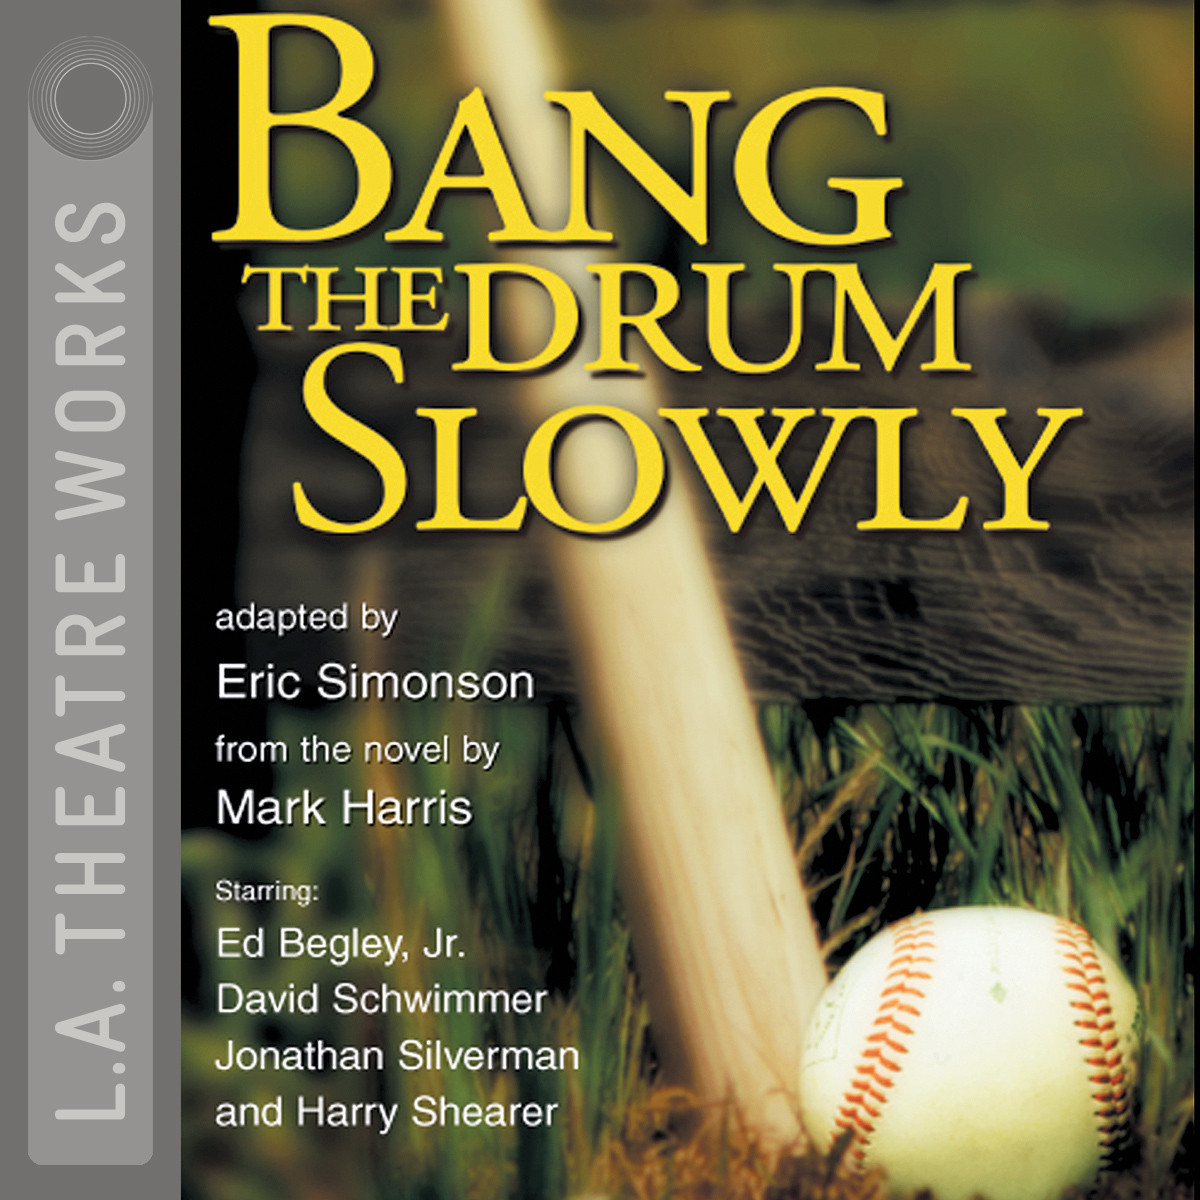 bang the drum slowly Search for bang the drum slowly on amazoncom referenced in st elsewhere: bang the eardrum slowly (1985) see more » soundtracks home on the range (uncredited) lyrics by brewster m higley and music by daniel e kelley arranged by nick manolff see more .